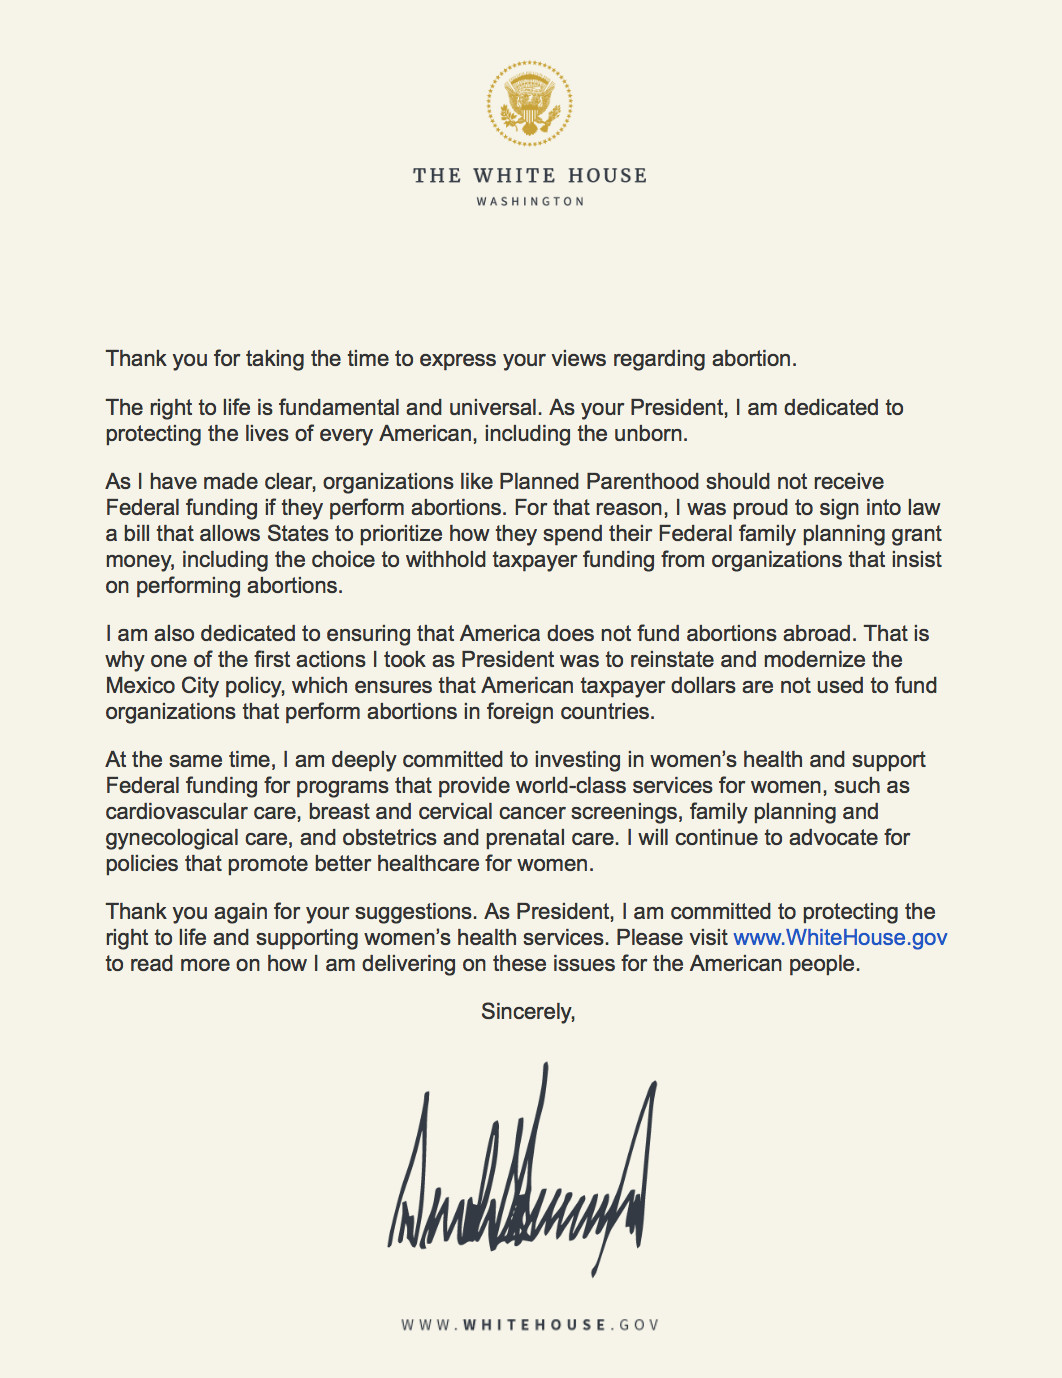 Here S What Happened When One Woman Emailed The White House About